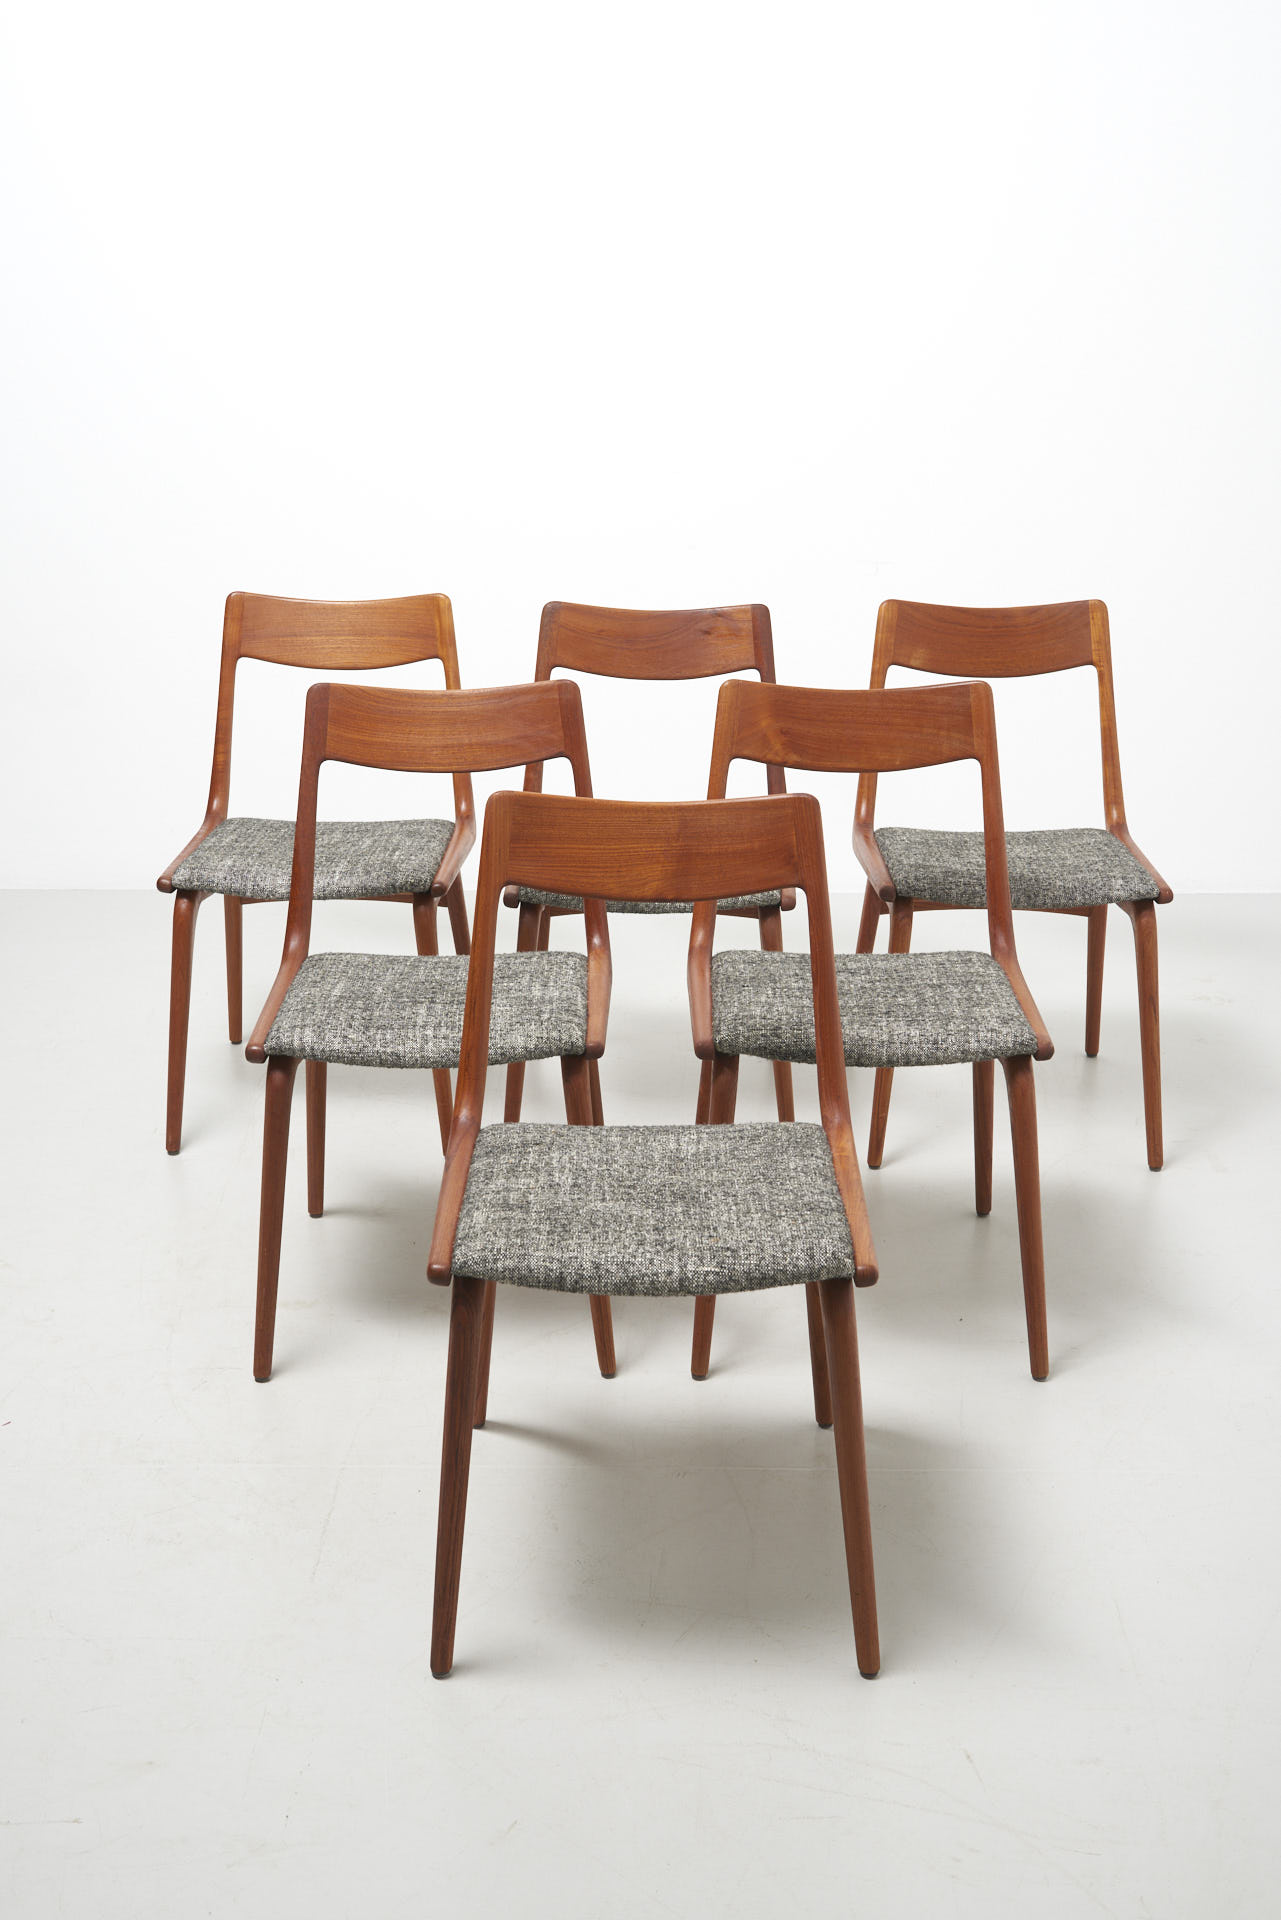 modestfurniture-vintage-2208-boomerang-dining-chairs-alfred-christensen01